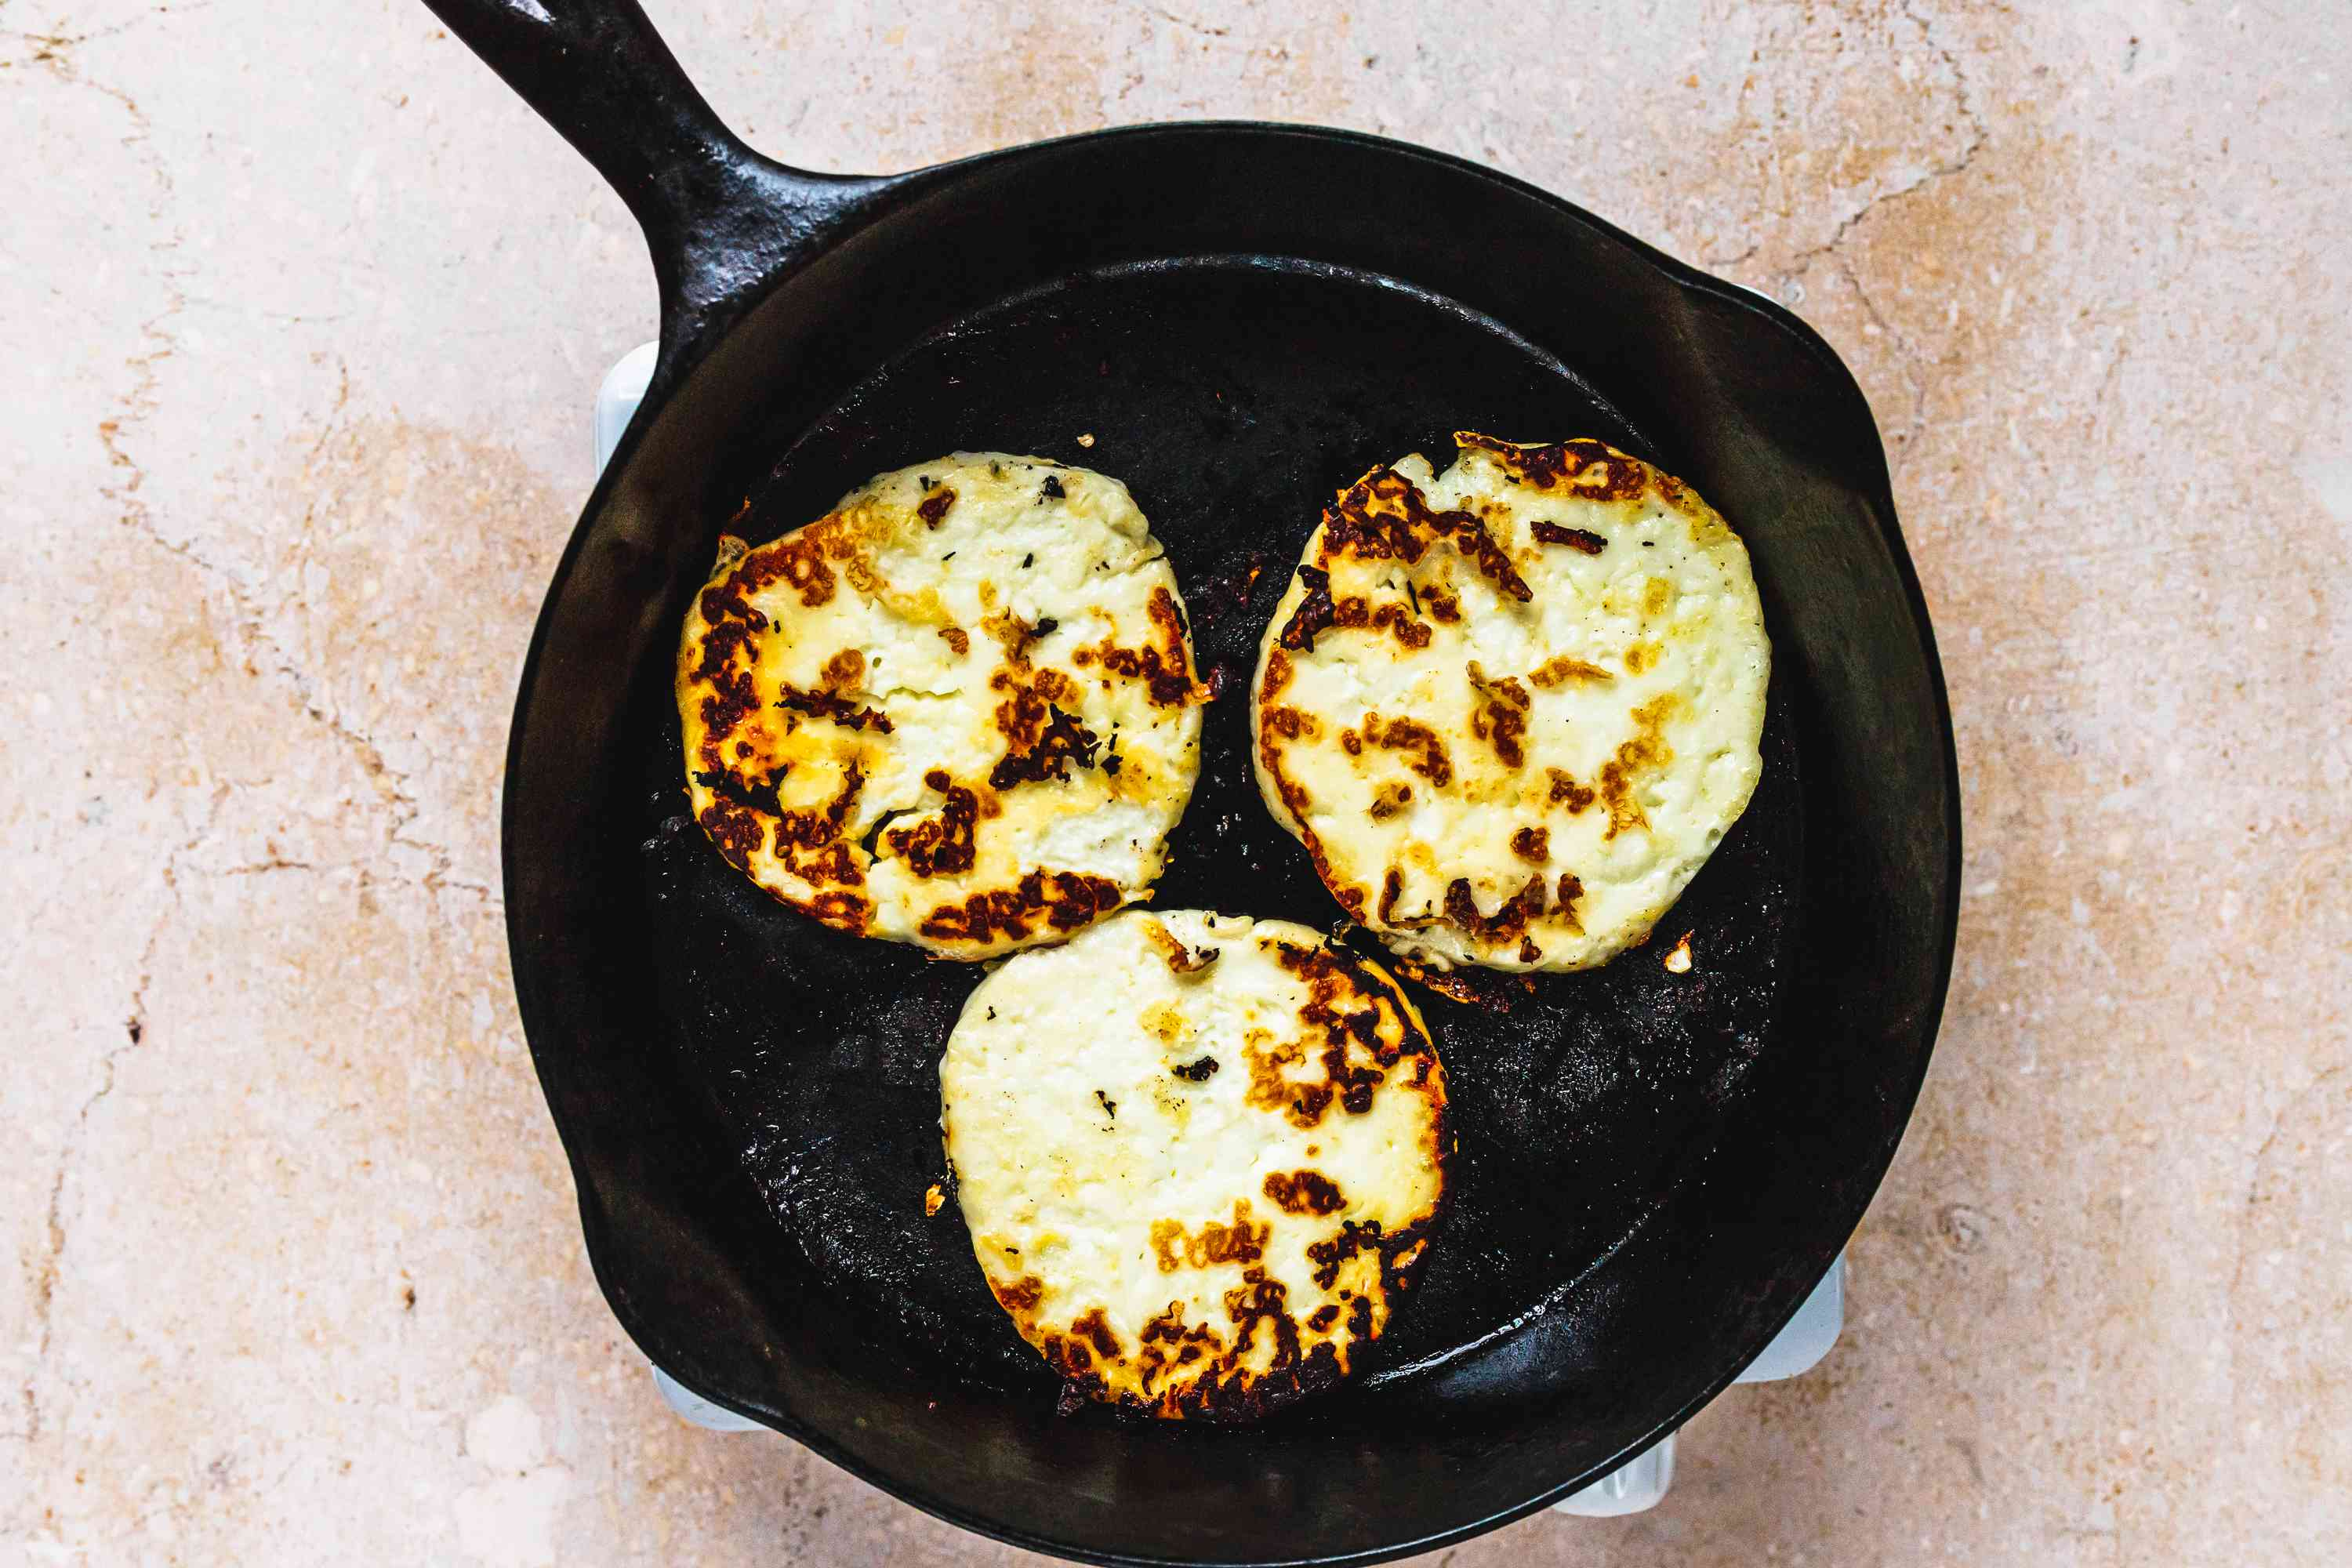 Halloumi cheese slices browning in pan